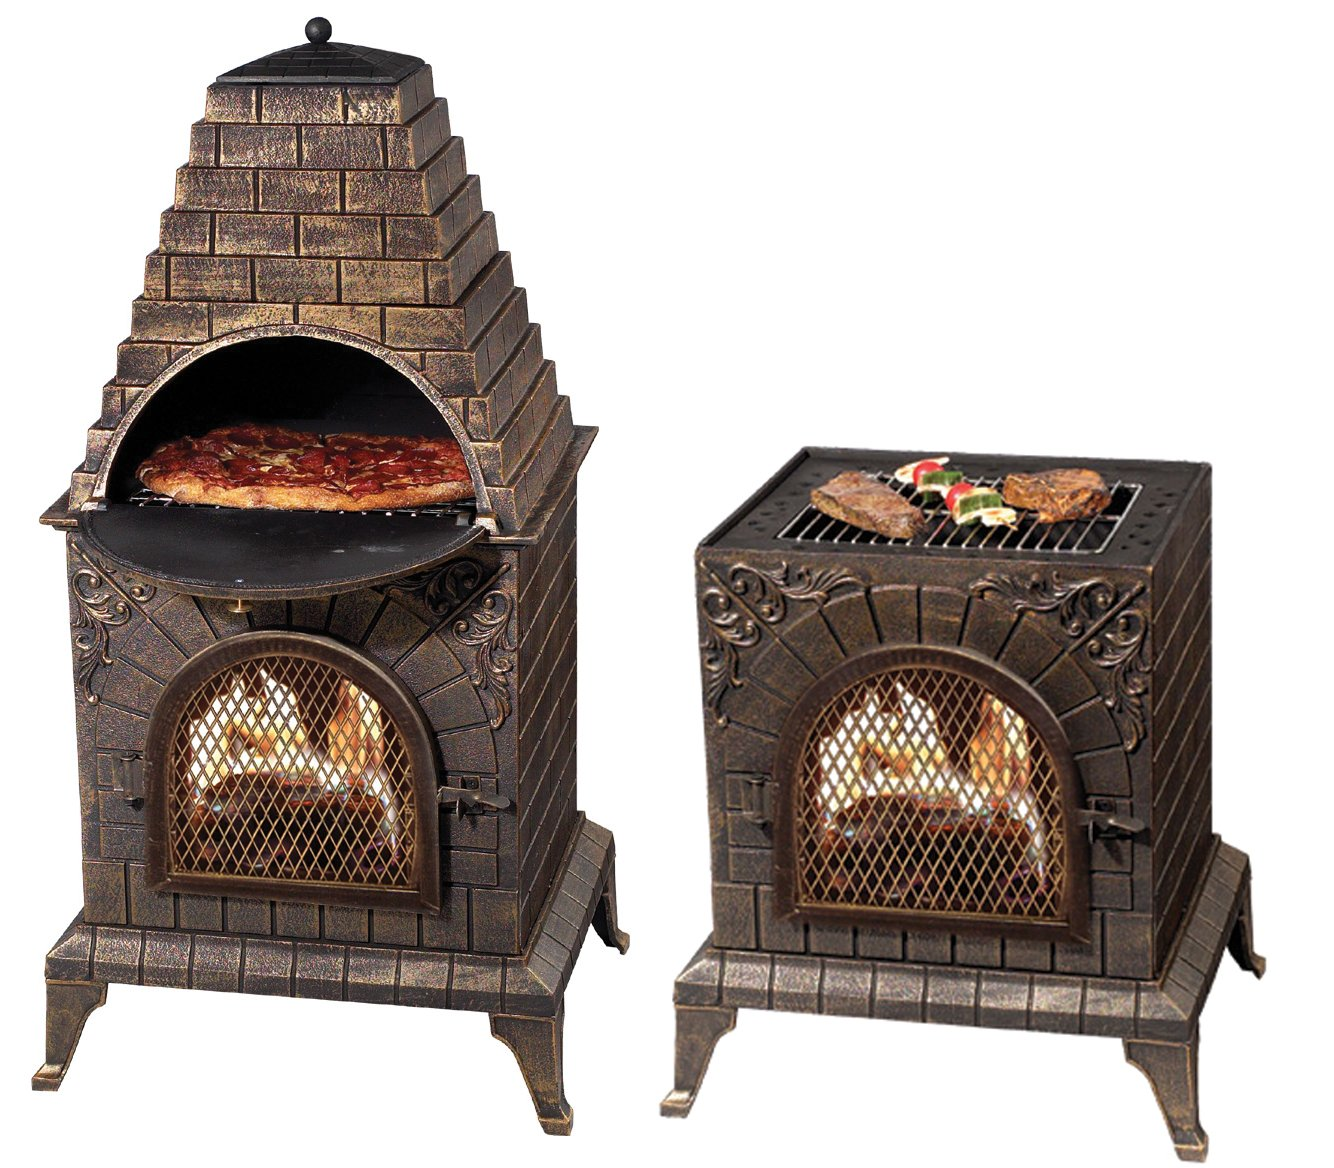 Deeco DM-0039-IA-C Aztec Allure Cast Iron Pizza Oven Chiminea by Deeco Consumer Products